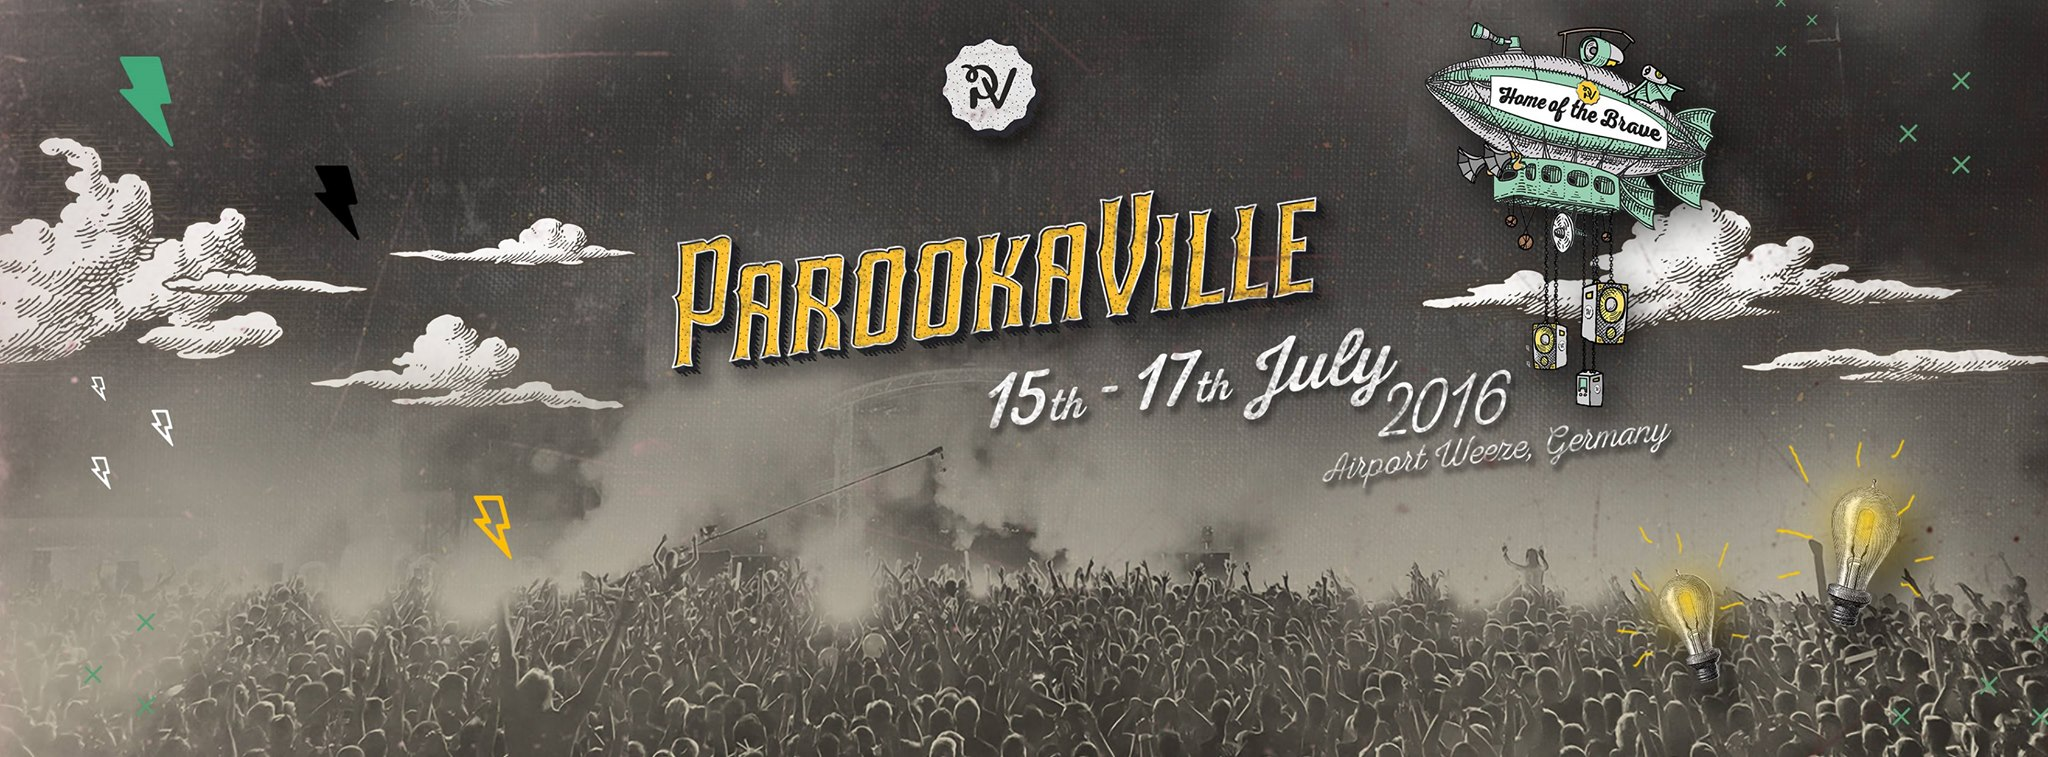 download → Axwell /\ Ingrosso, Tiesto, Afrojack, Moguai, Fedde le Grand, Steve Aoki, Yellow Claw, Tujamo, Gestort aber GeiL, etc - live at Parookaville 2016 (Weeze, Germany) - July 2016